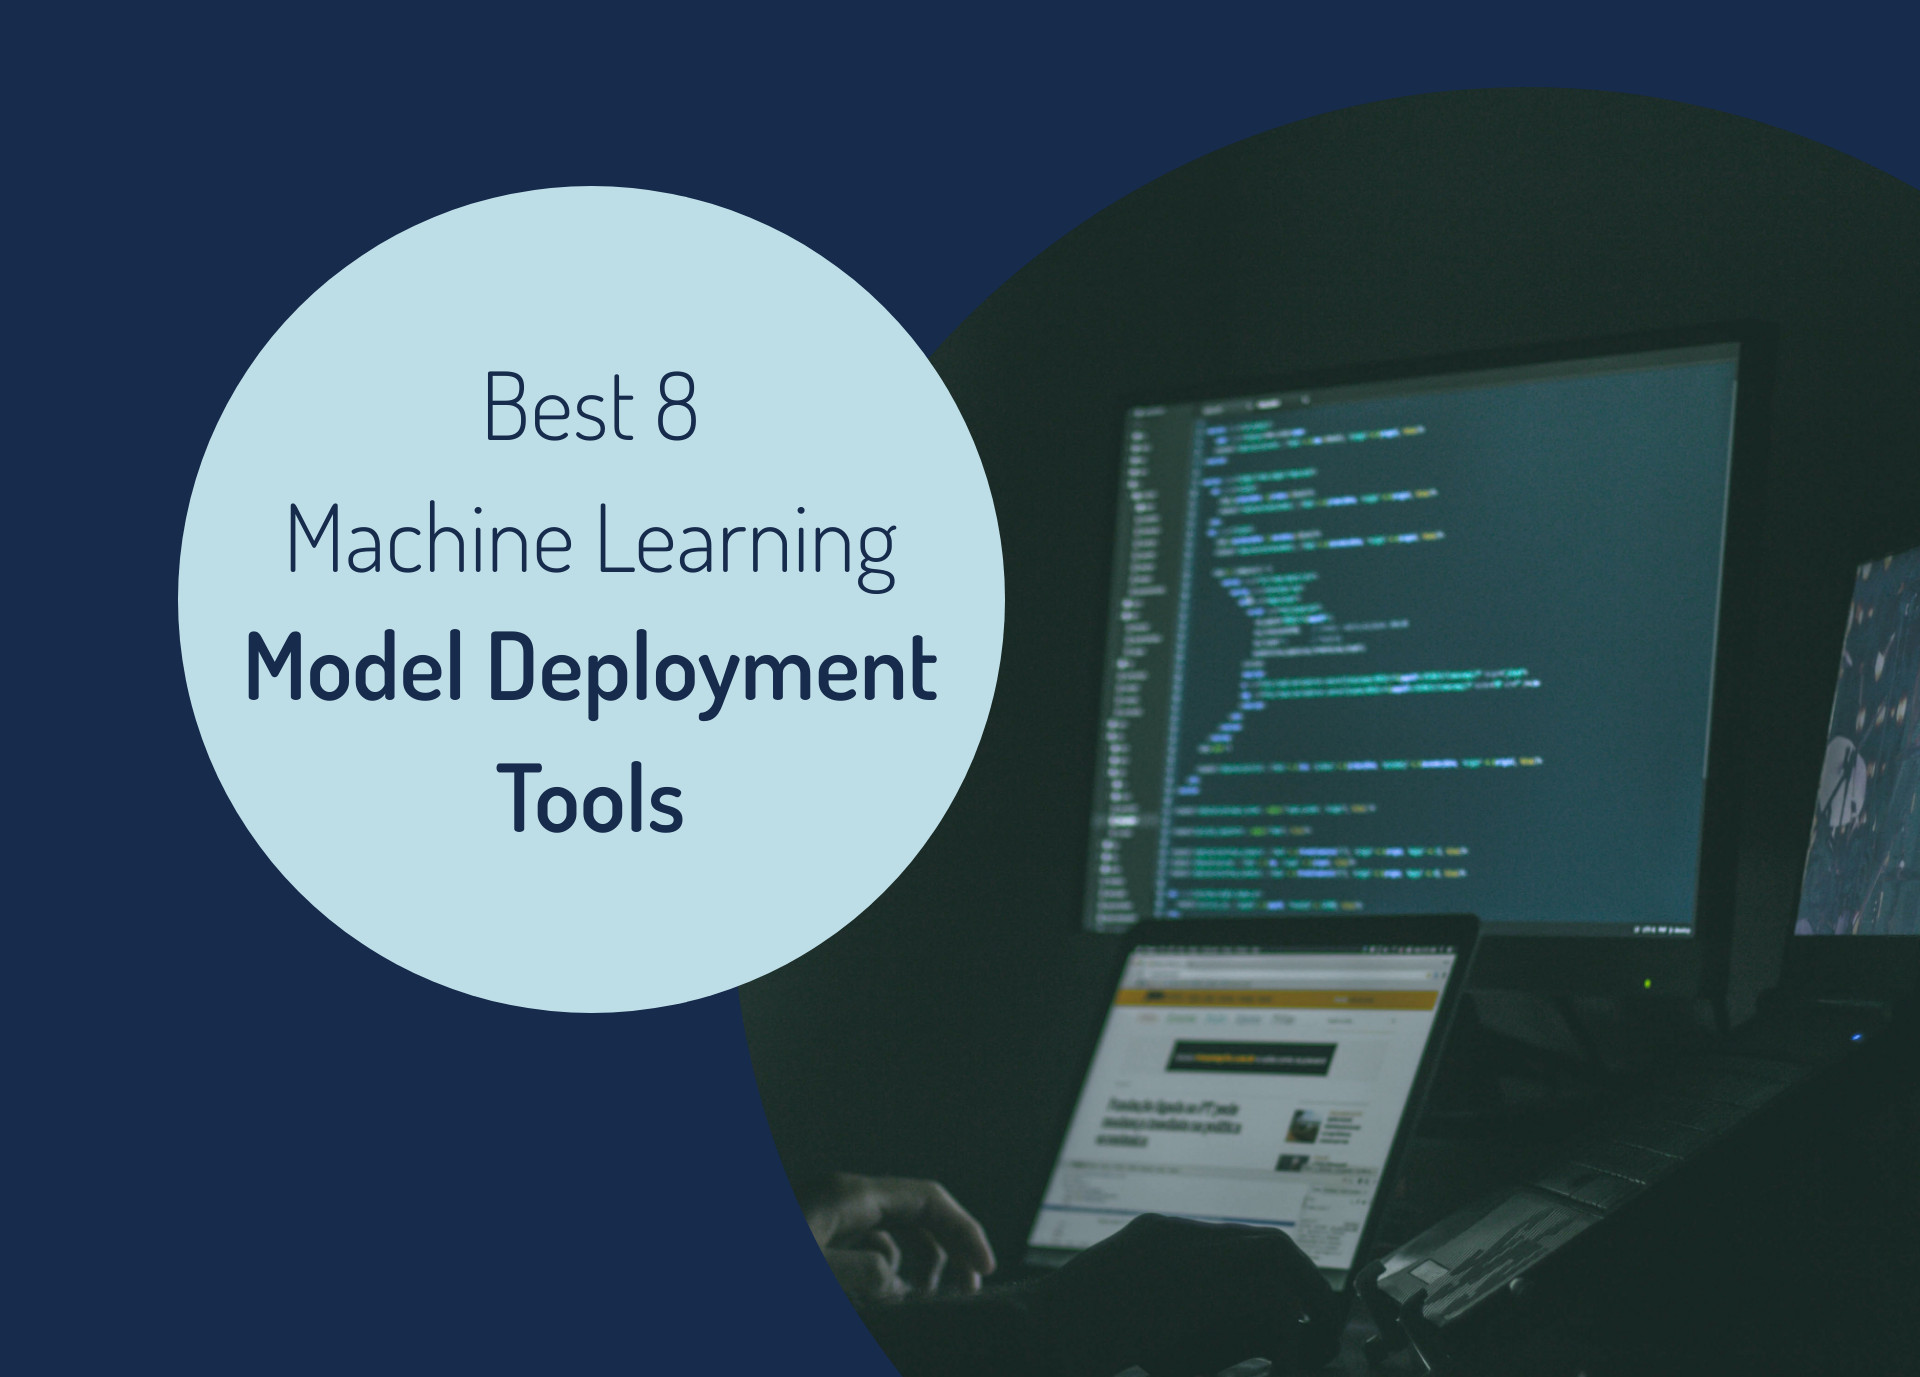 Best 8 Machine Learning Model Deployment Tools That You Need to Know